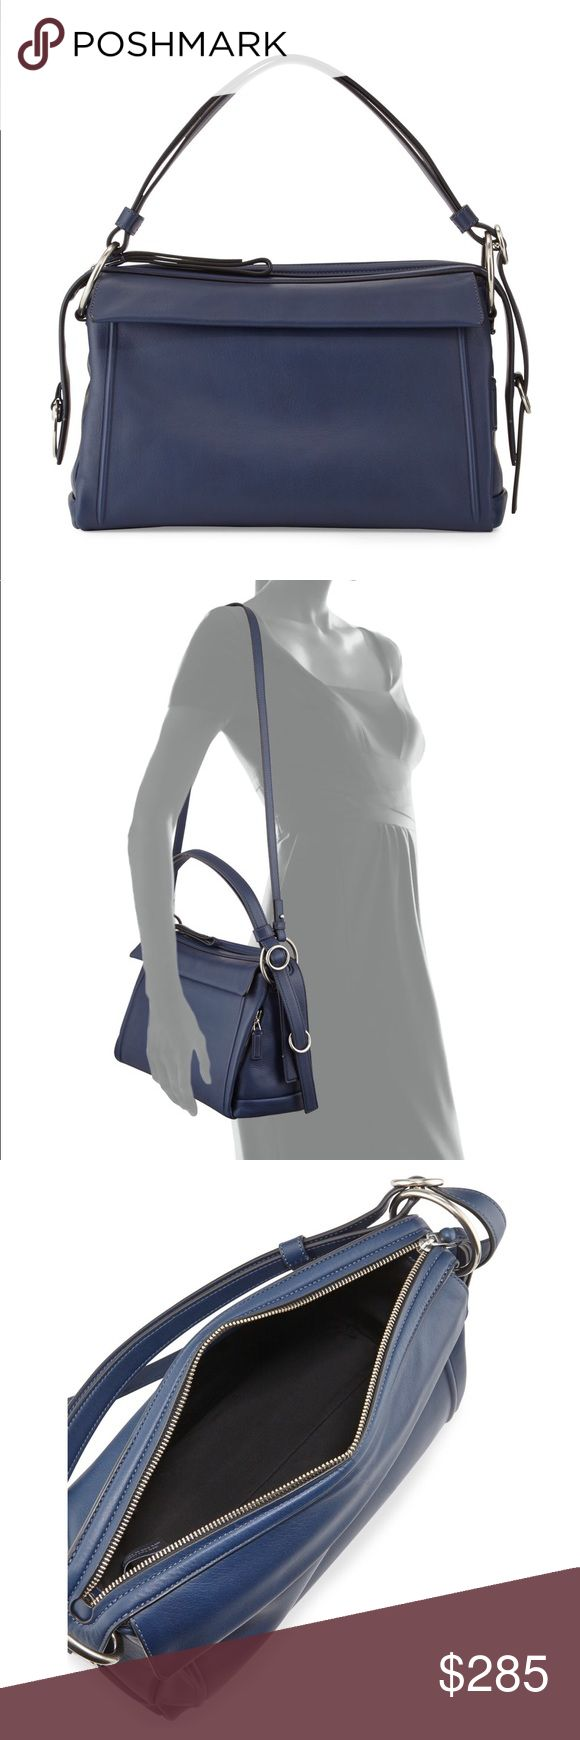 "NWT Marc by Marc Jacobs Prism Amalfi Coast Purse NWT Marc by Marc Jacobs Prism Amalfi Coast Purse »→ crossbody drop 22"" »→ flat shoulder strap drop 7"" »→ 8.8"" height »→ 14.2"" width »→ flap cover exterior front zip pocket »→ zip top closure »→ bag weighs 2lbs »→ sheepskin leather »→ new with tag Marc by Marc Jacobs Bags"